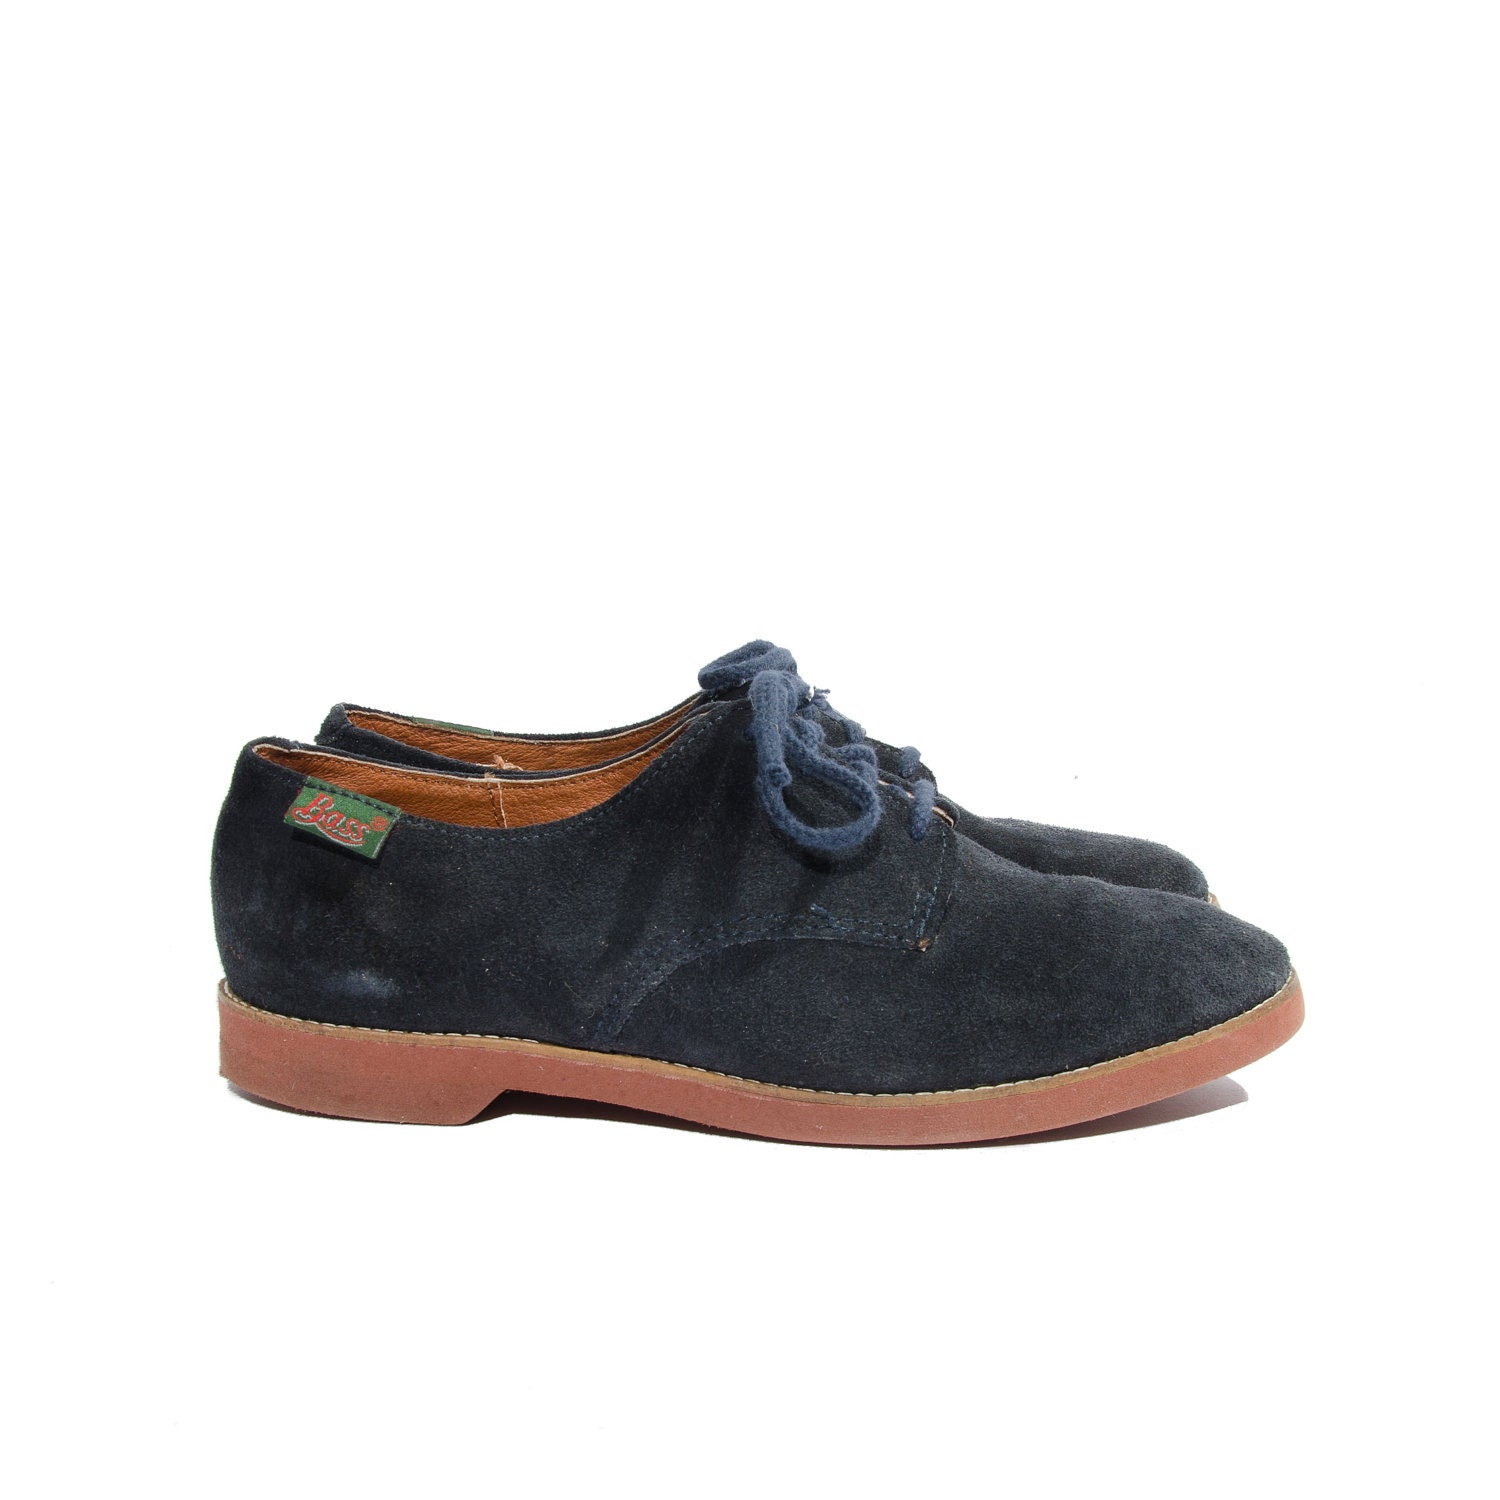 blue suede shoes s oxford shoes by bass size 8 1 2 m